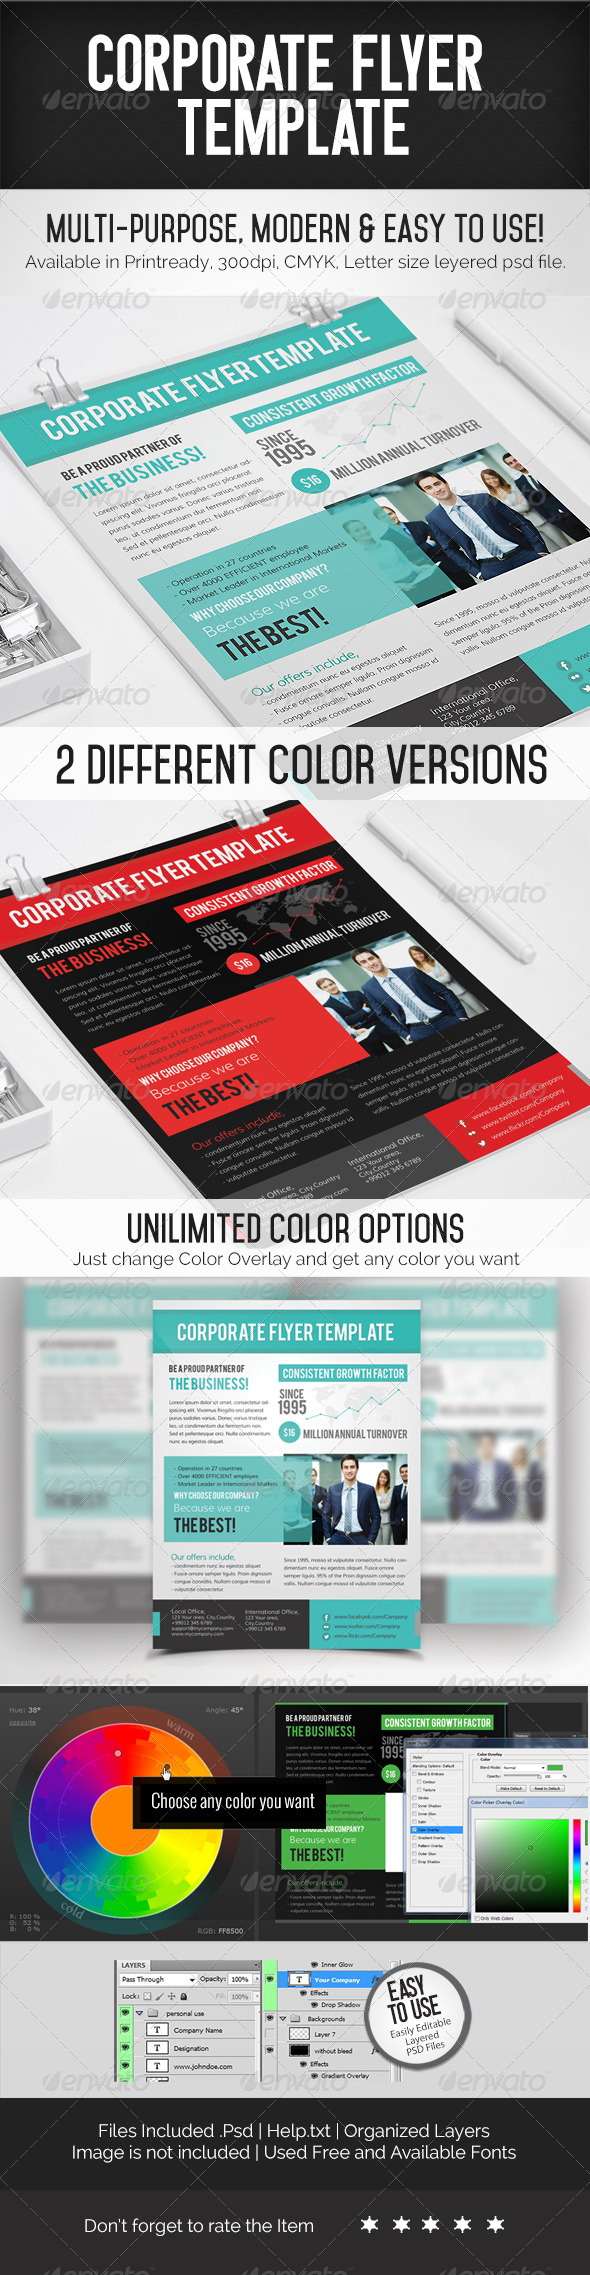 GraphicRiver Corporate Flyer Template 7121770